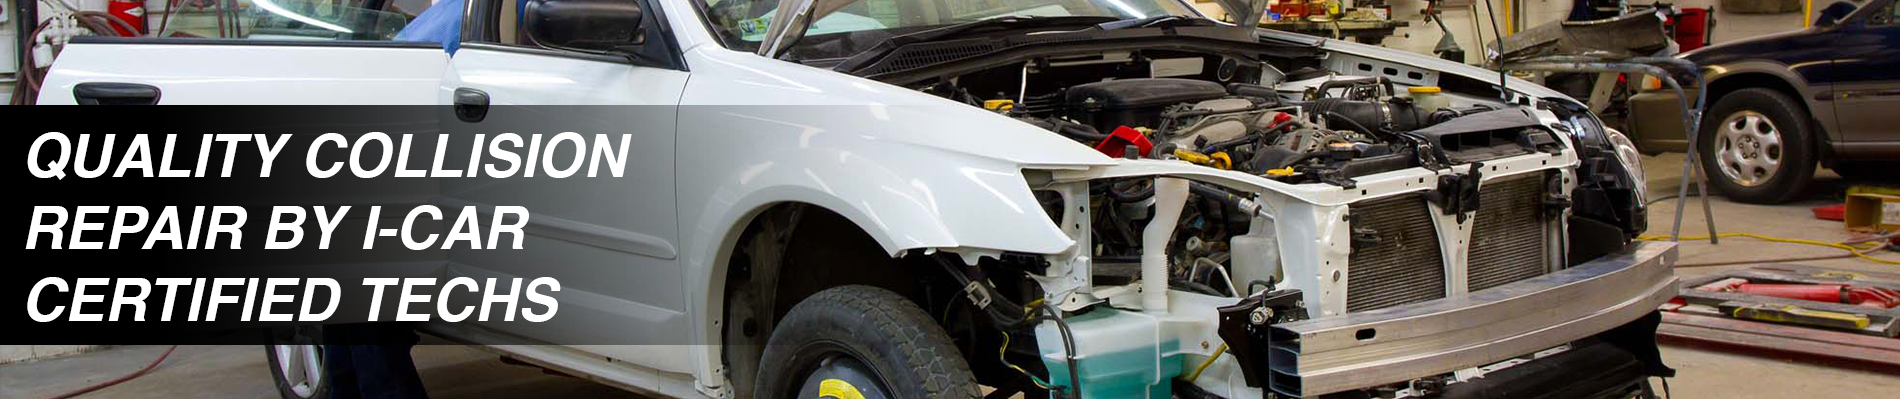 Quality Collision Repair By I-CAR Certified Technicians